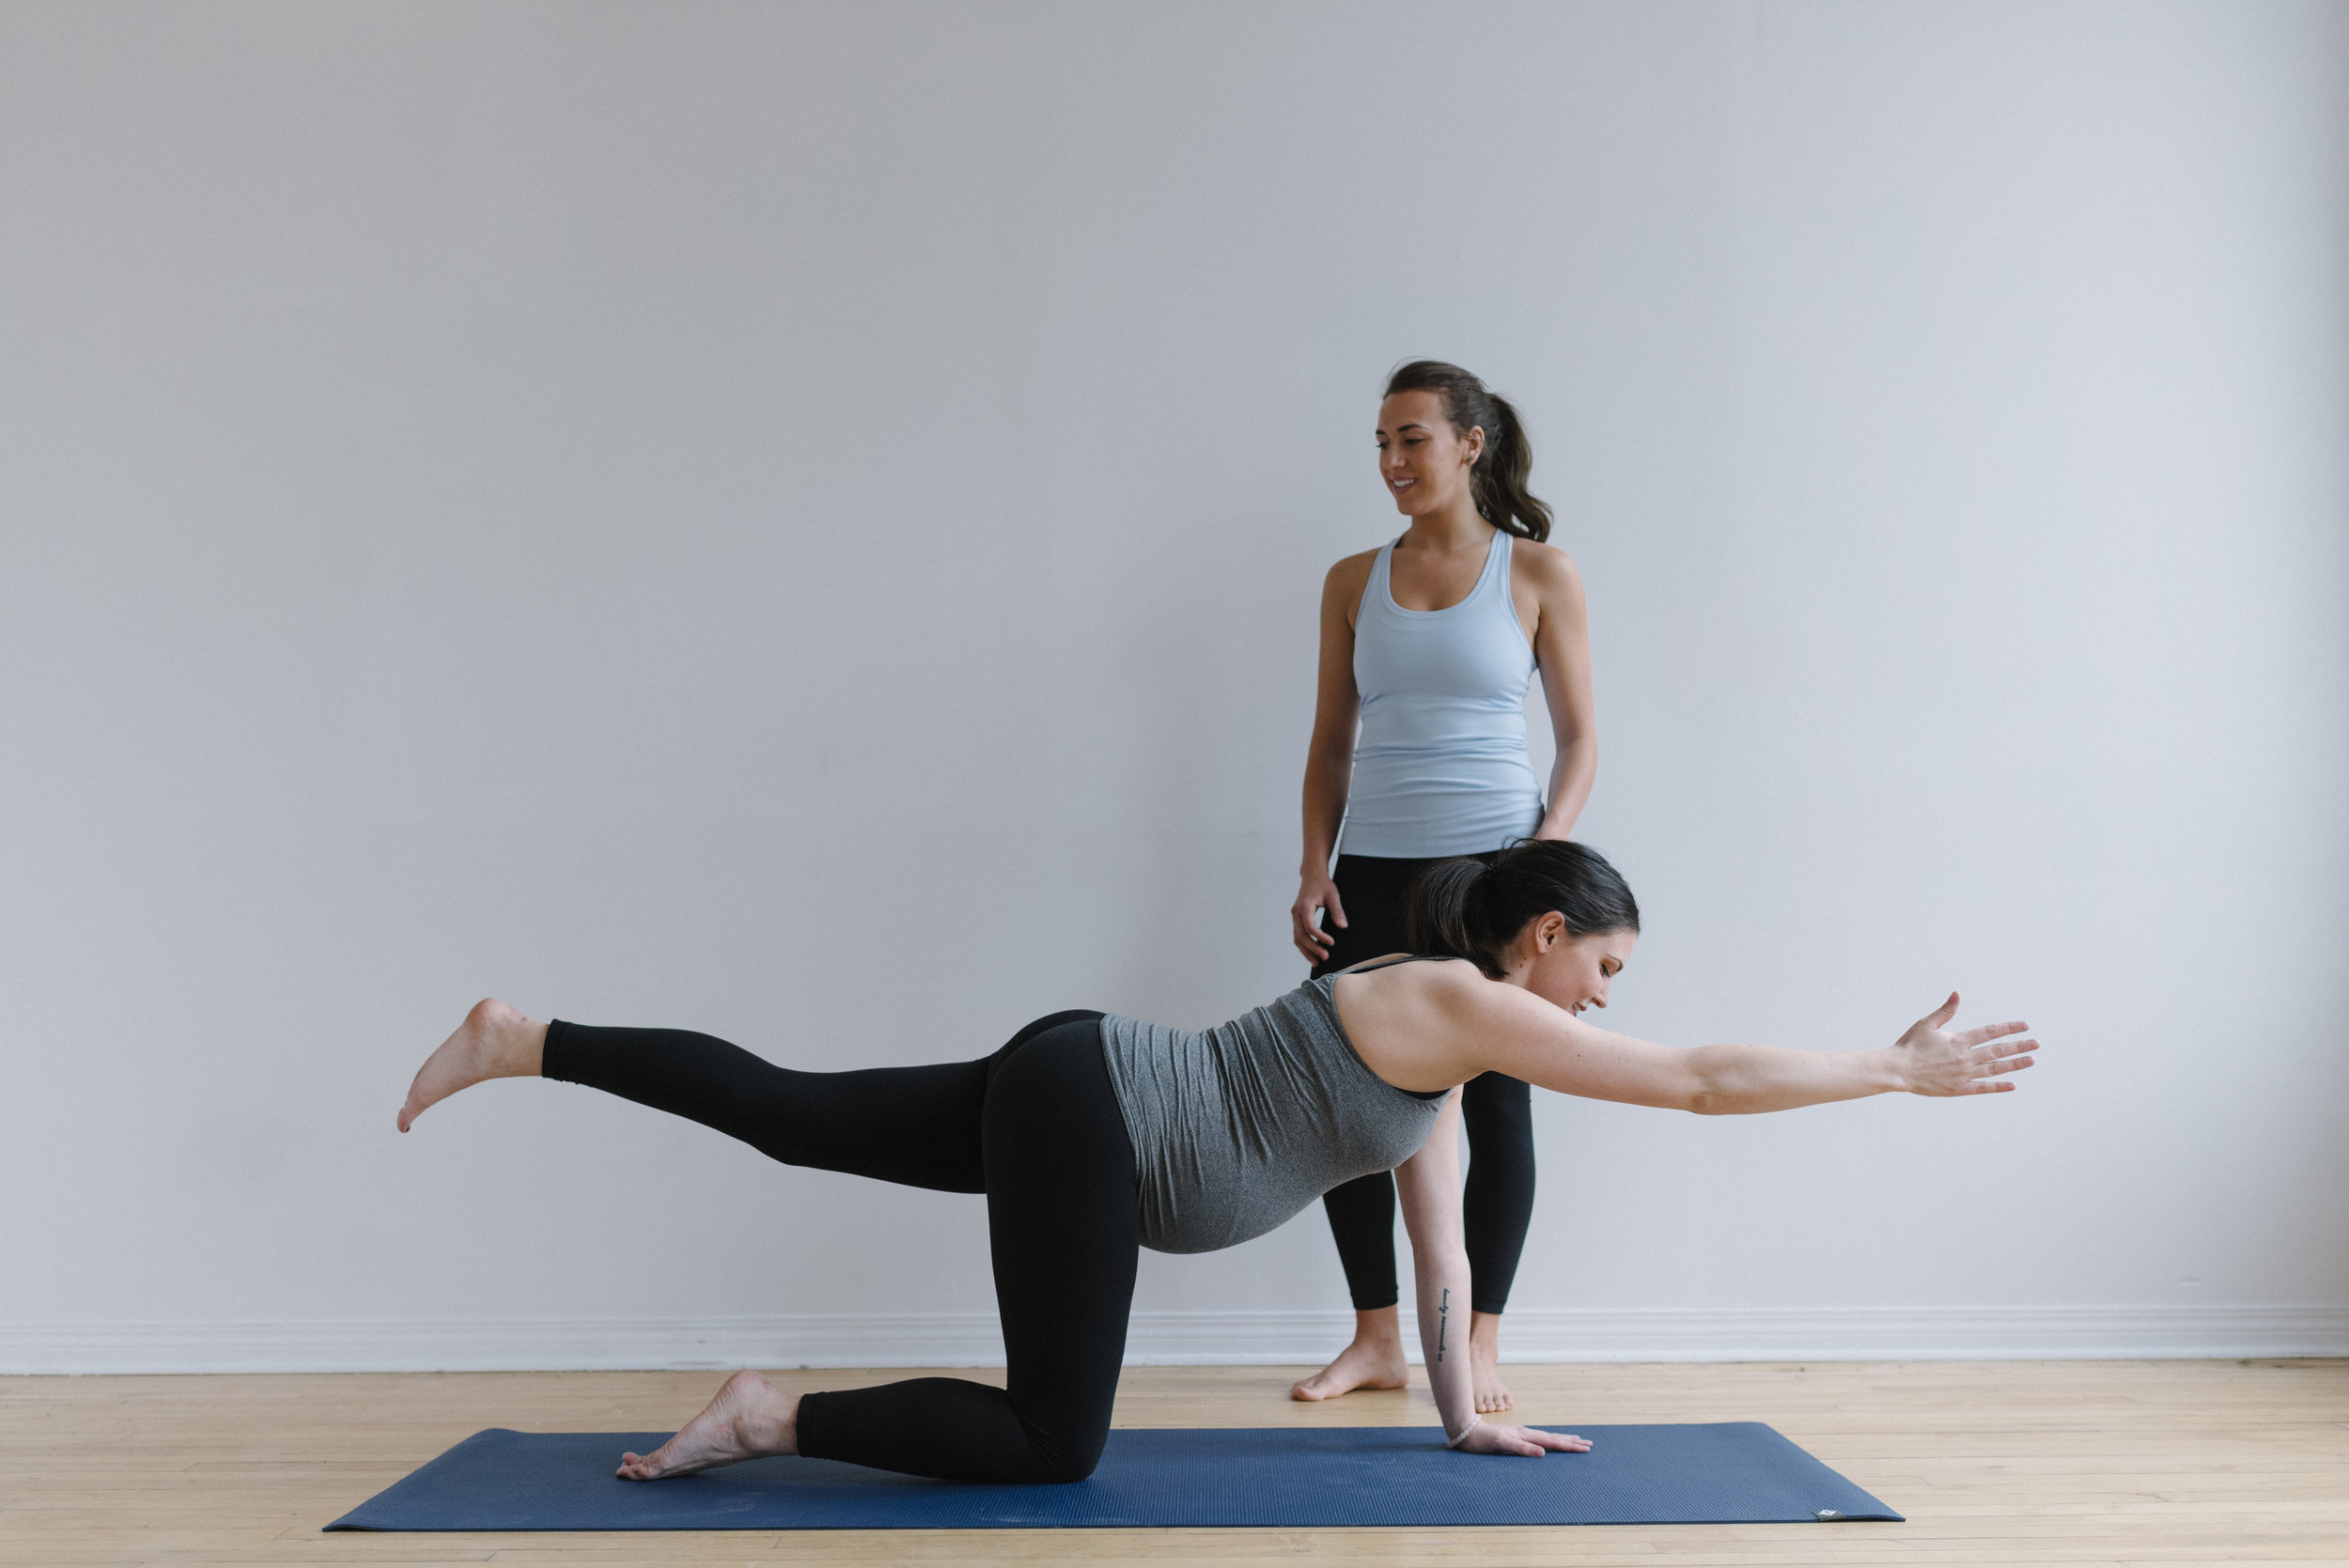 Prenatal+yoga+poses+for+every+trimester+_+Sam+D+Squire (4).jpeg